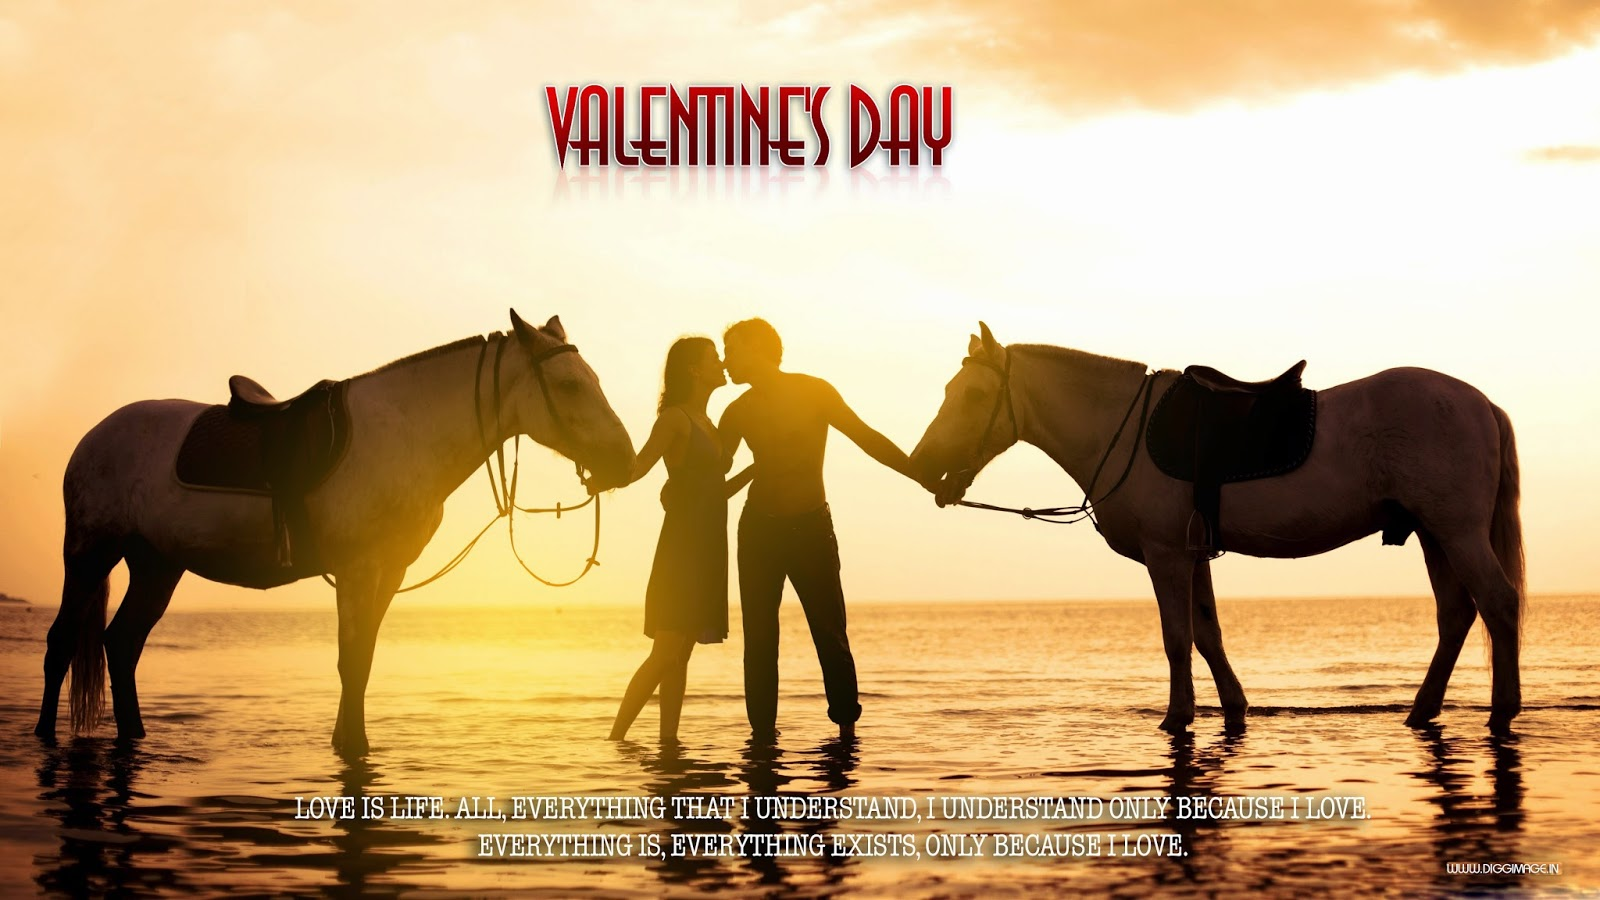 happy valentines day greetings, happy valentines day caption, happy valentines day quotes, happy valentines day greeting cards, happy valentines day 2015, happy valentines day cards printable, valentines day 2015 cards, happy valentine day pictures, happy valentine day message,